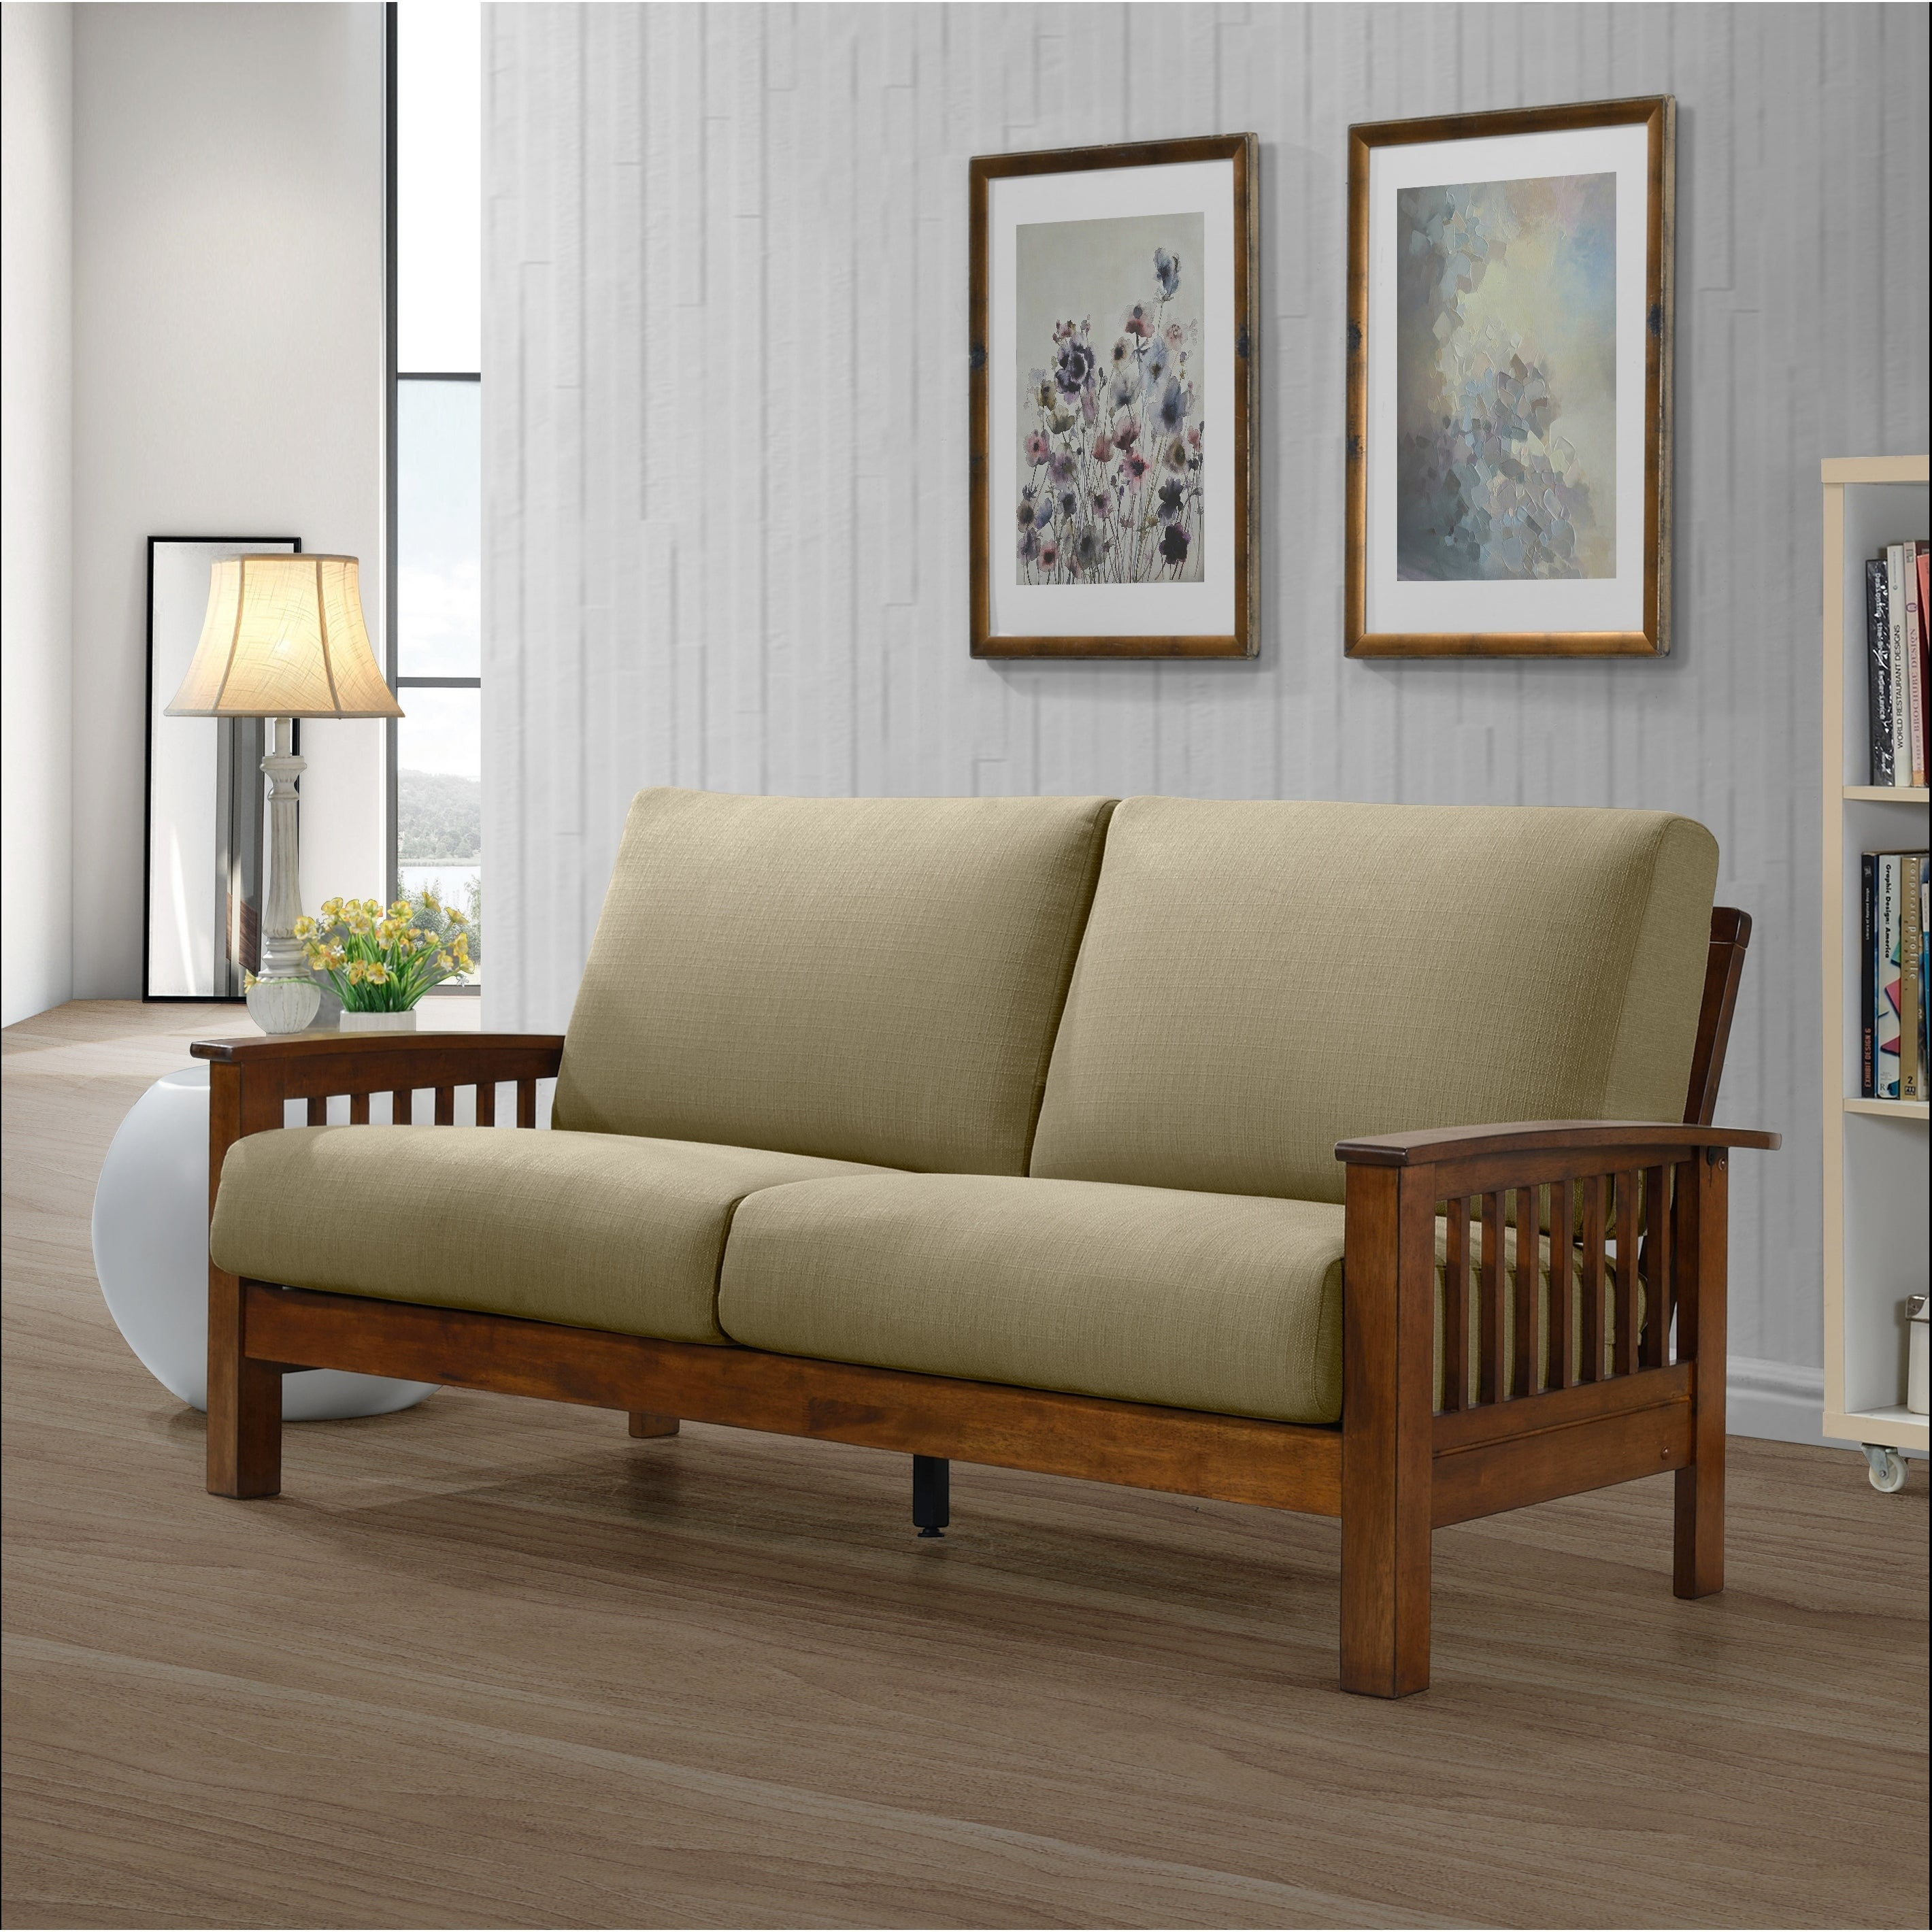 Buy Cushion Back Mission Craftsman Sofas Couches Online At within Mission Style Living Room Set